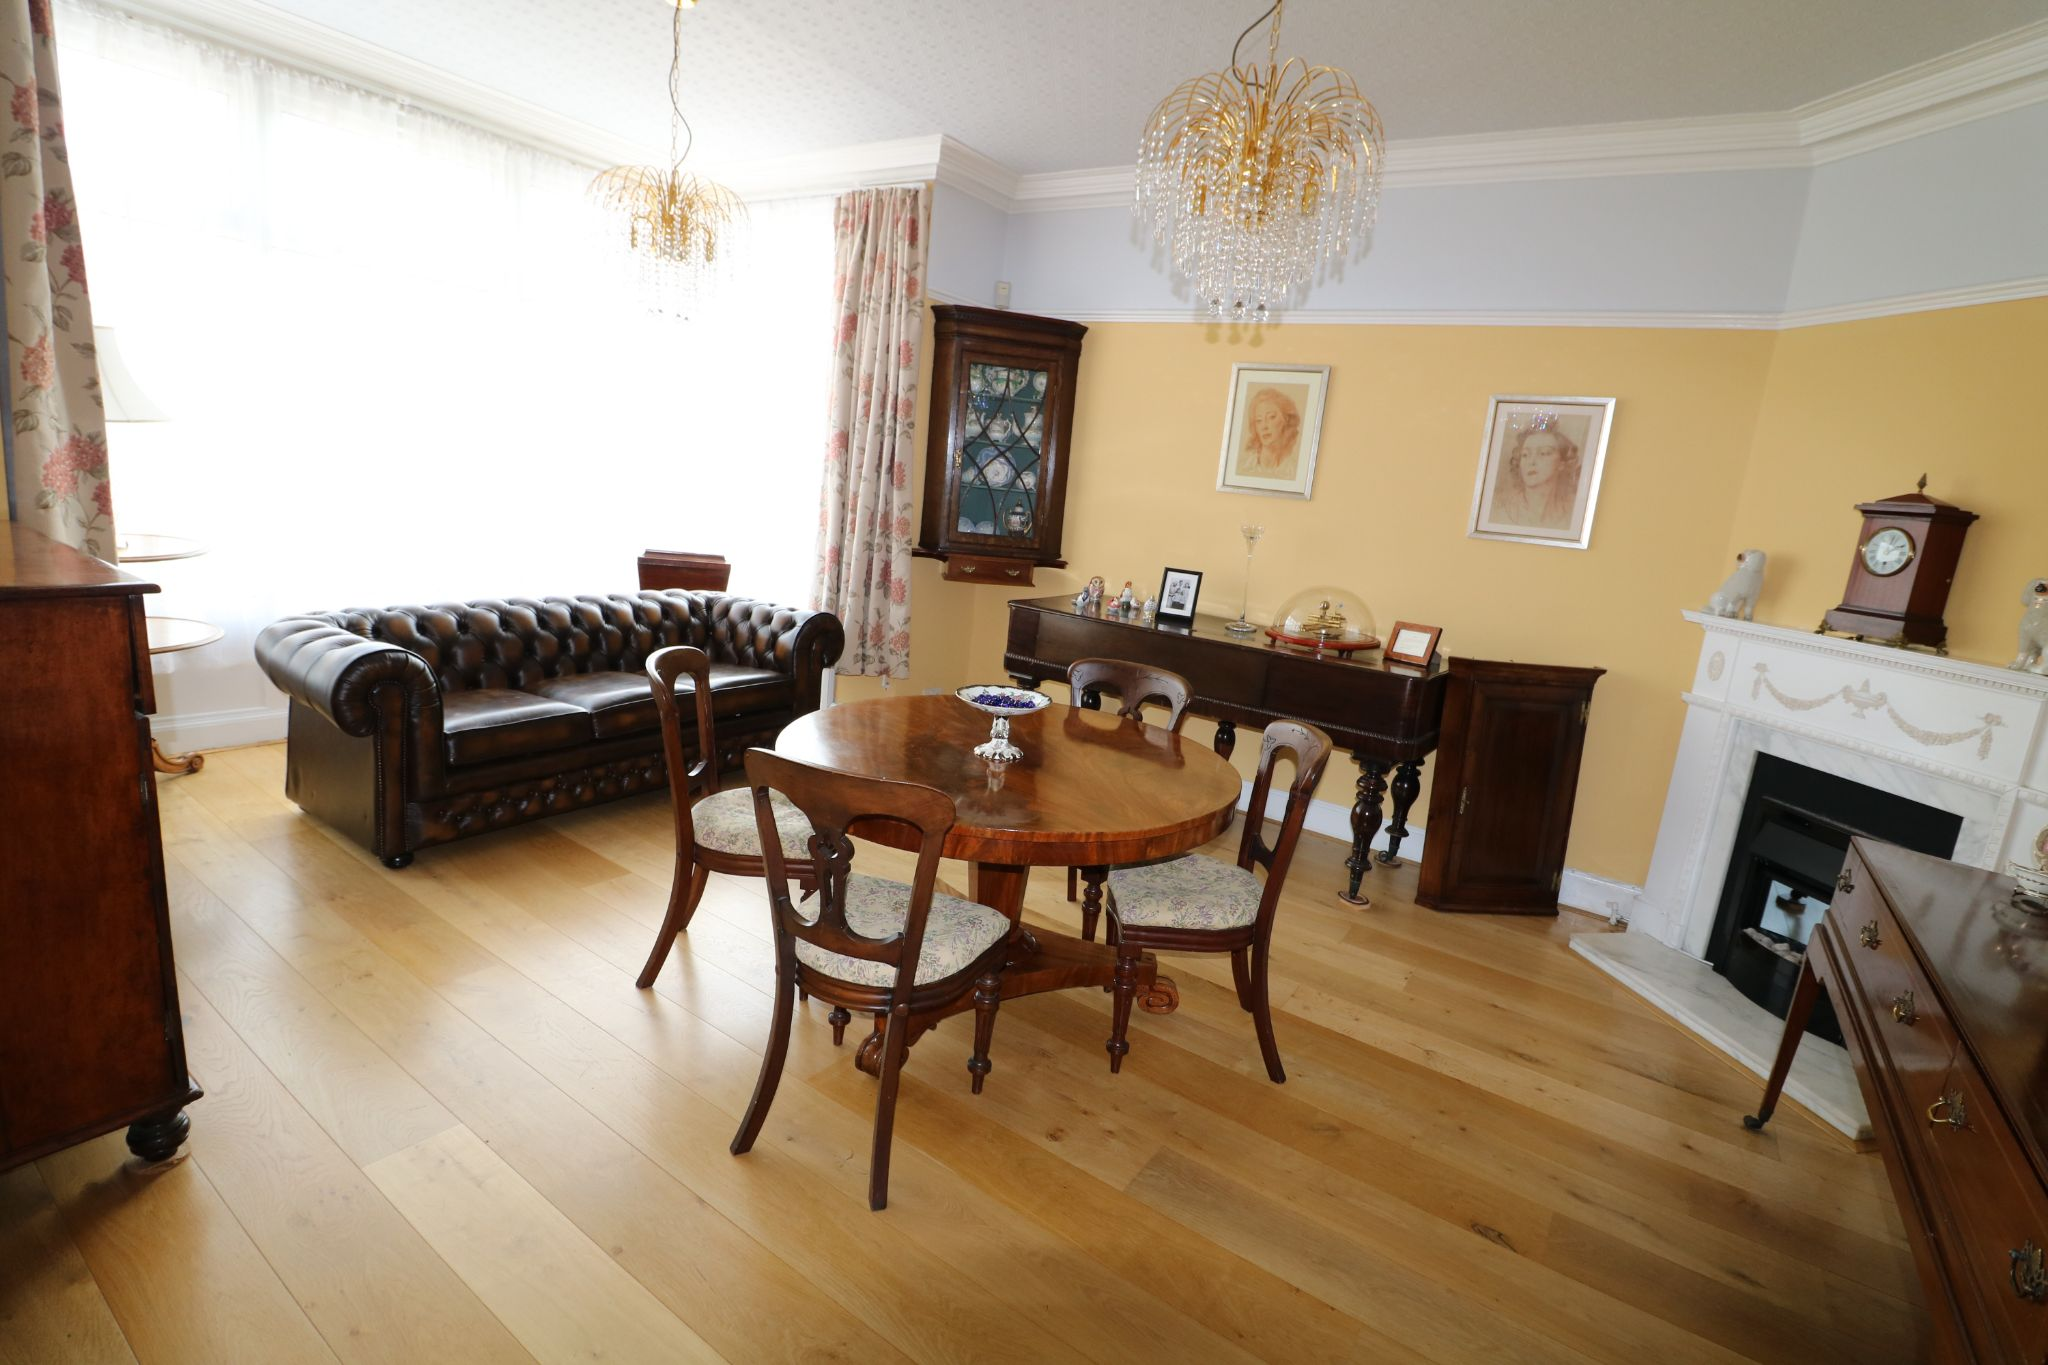 6 Bedroom Semi-detached House For Sale - Photograph 4